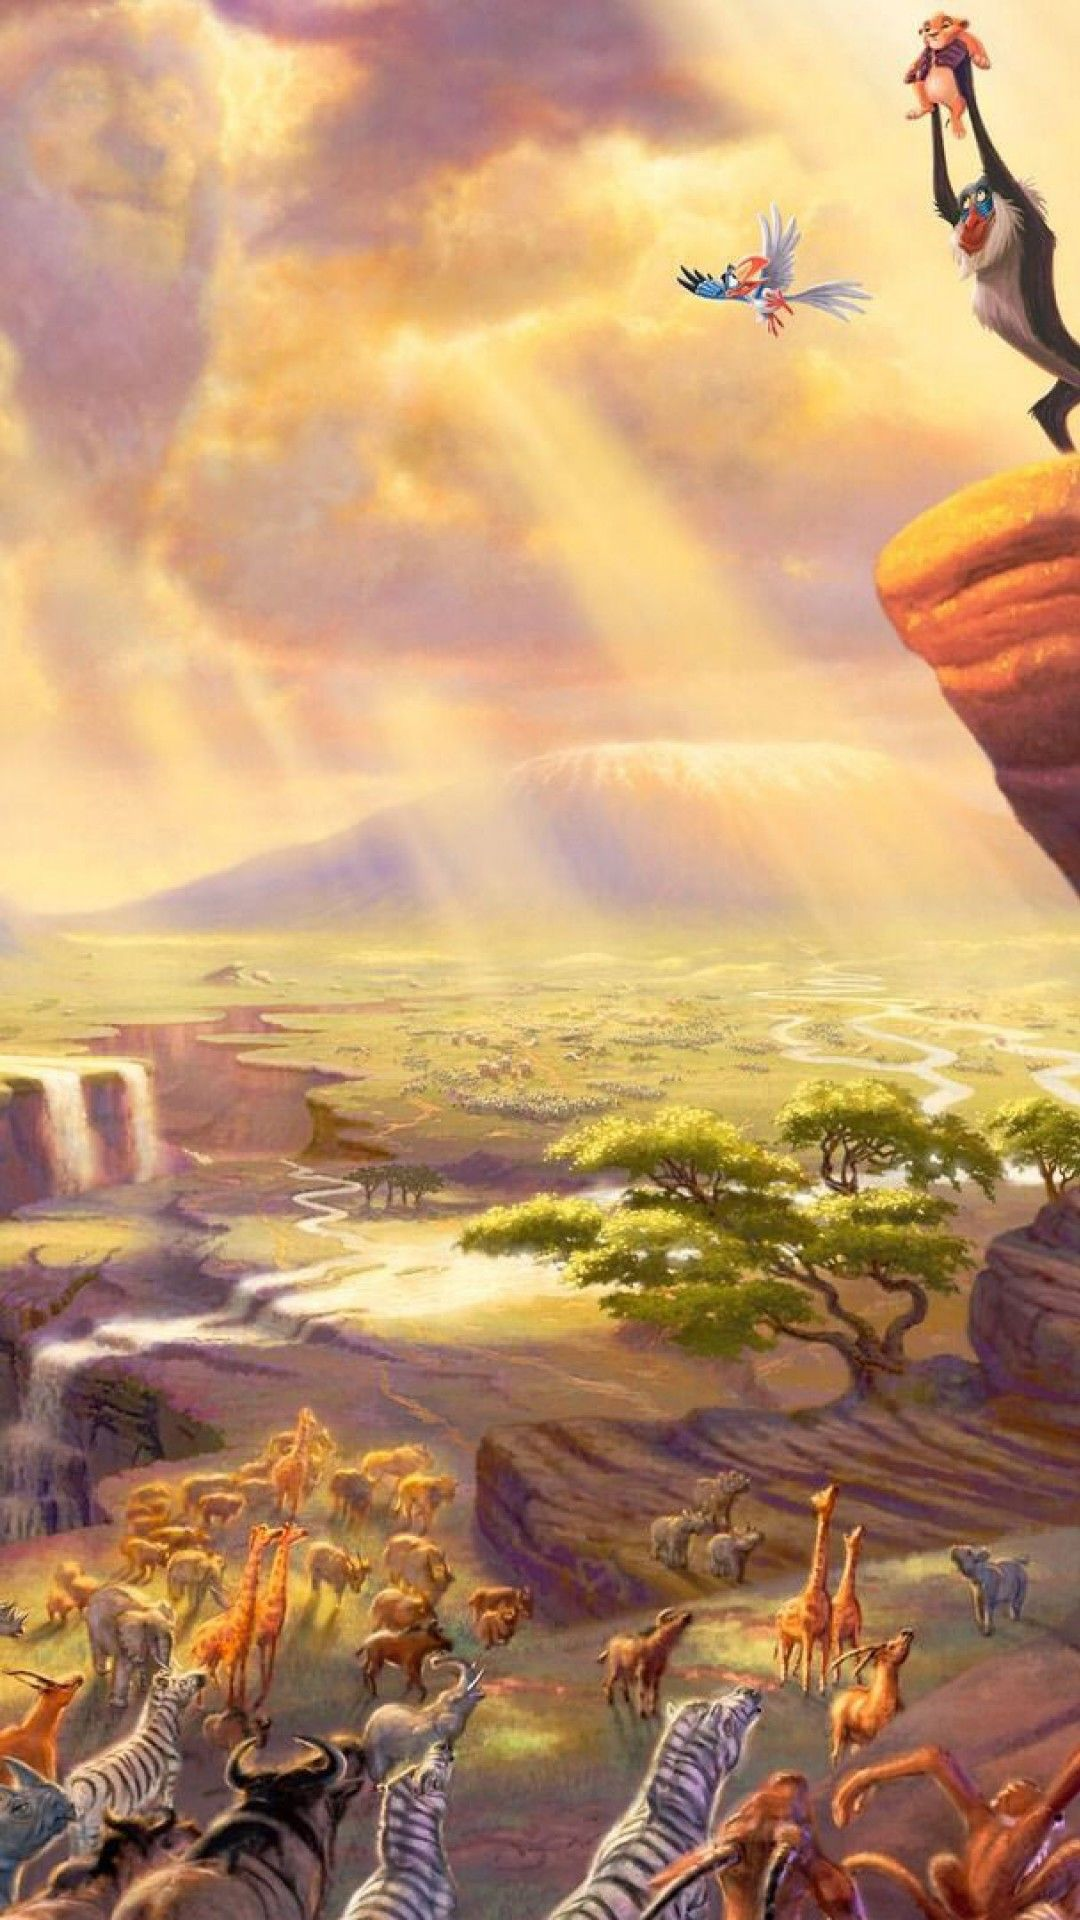 Lion King Iphone Wallpaper - Holding Up Simba Lion King Movie , HD Wallpaper & Backgrounds